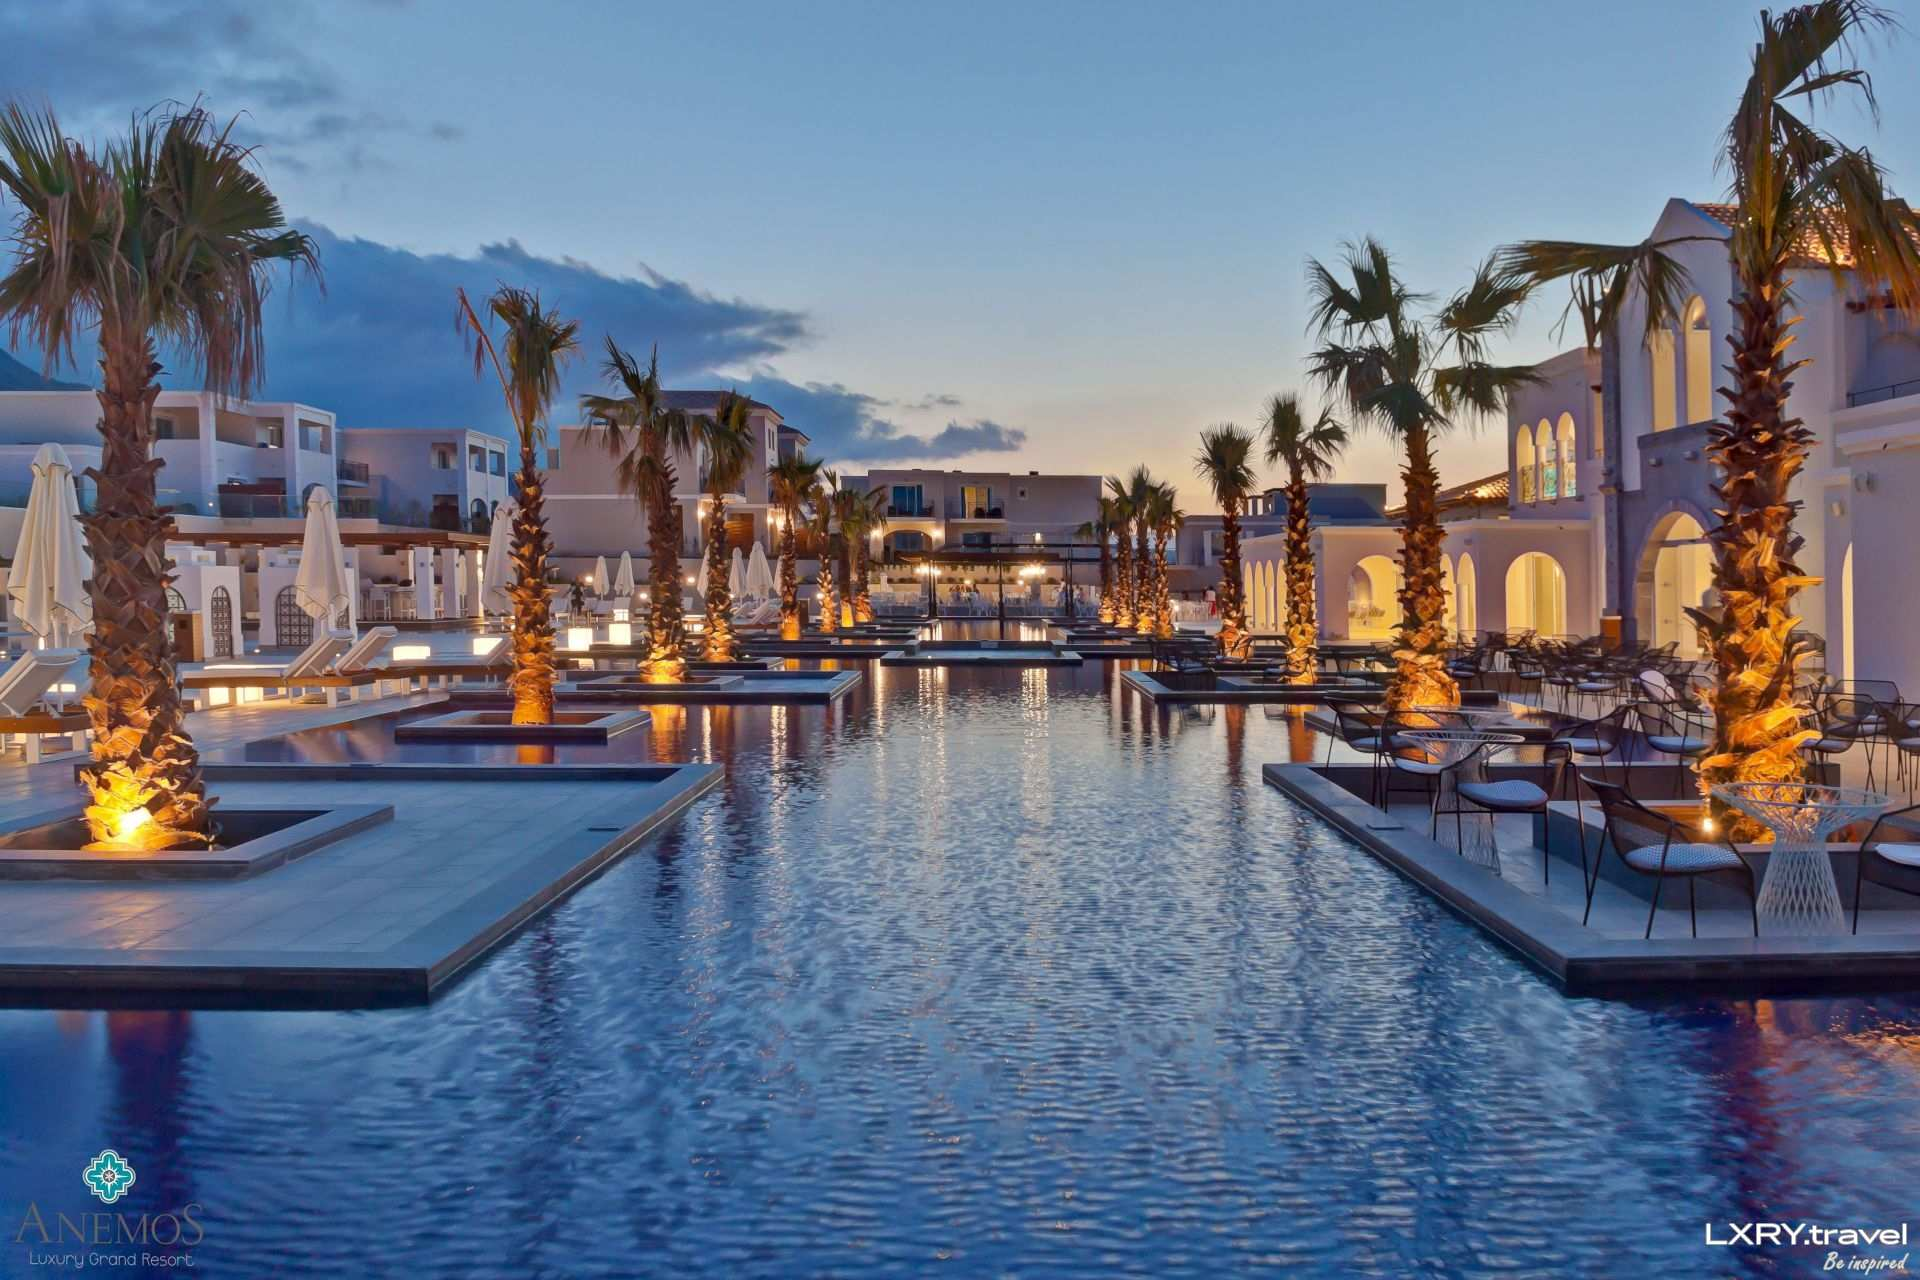 ANEMOS LUXURY GRAND RESORT 5/46